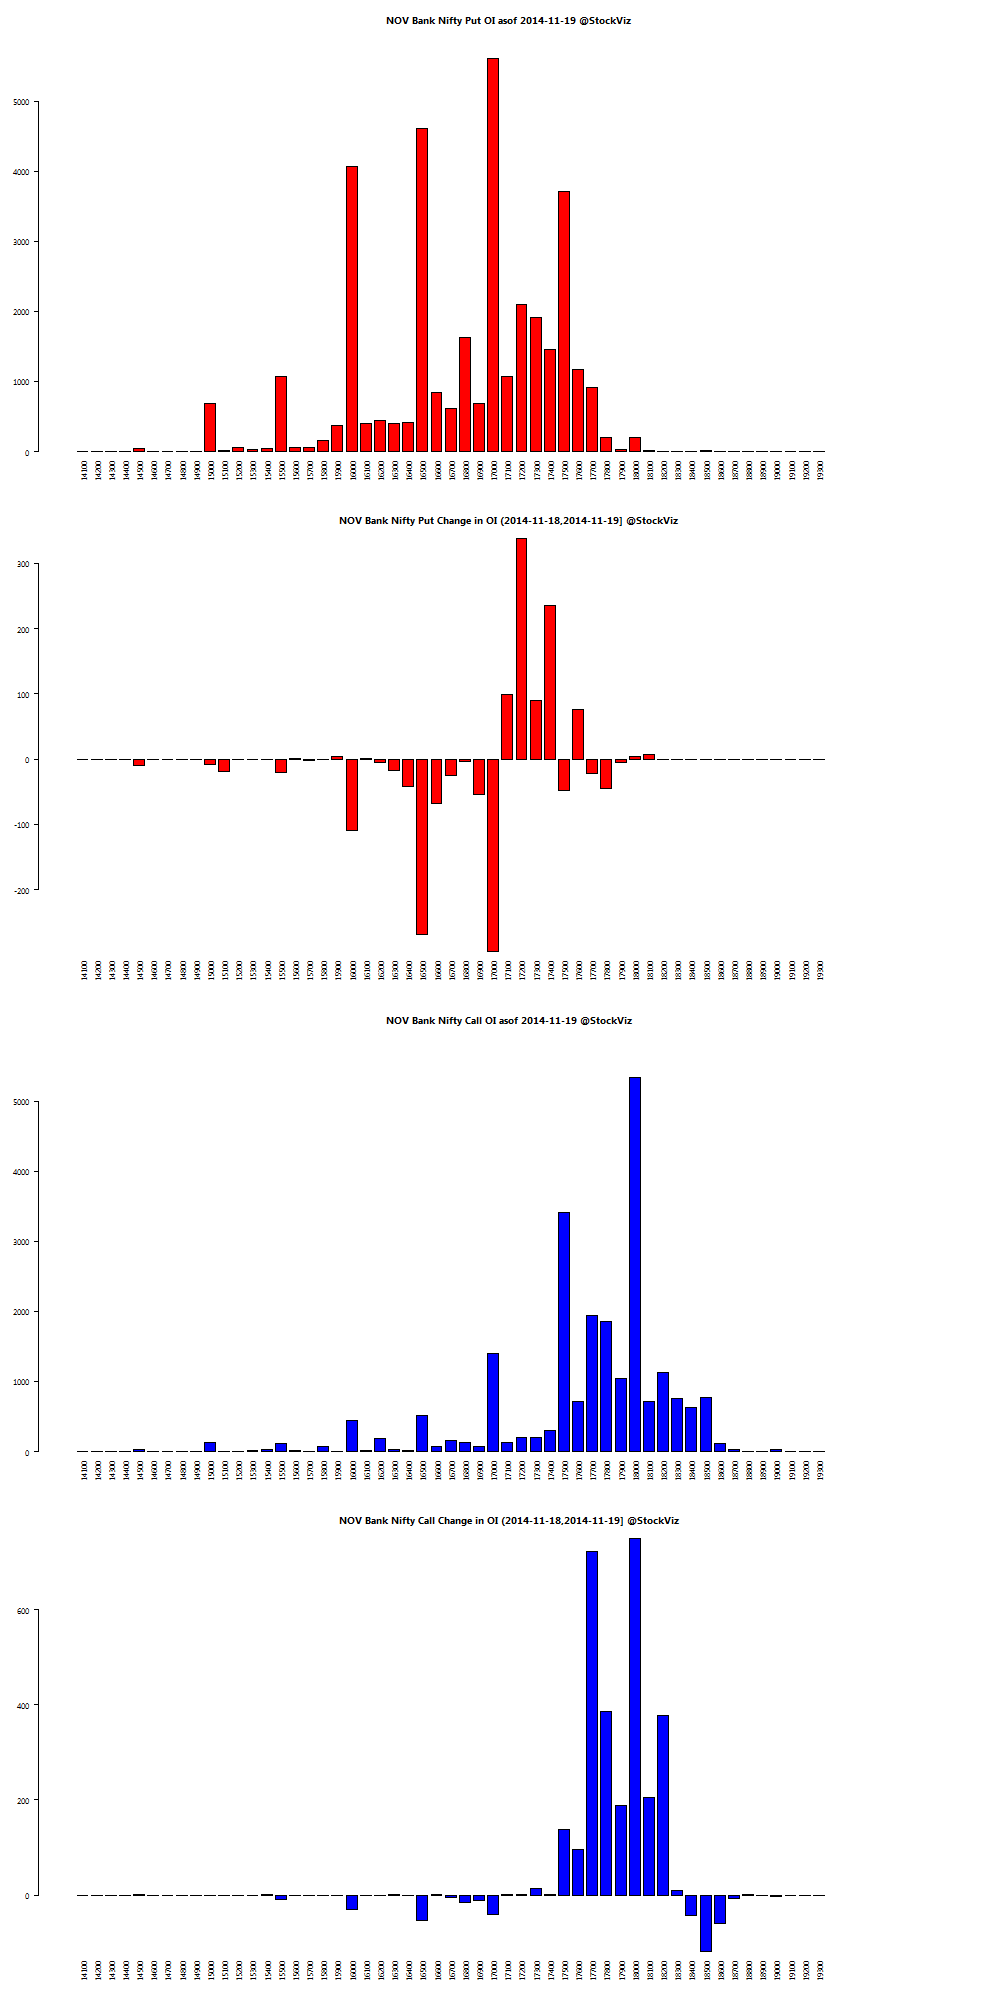 BANKNIFTY OI Chart